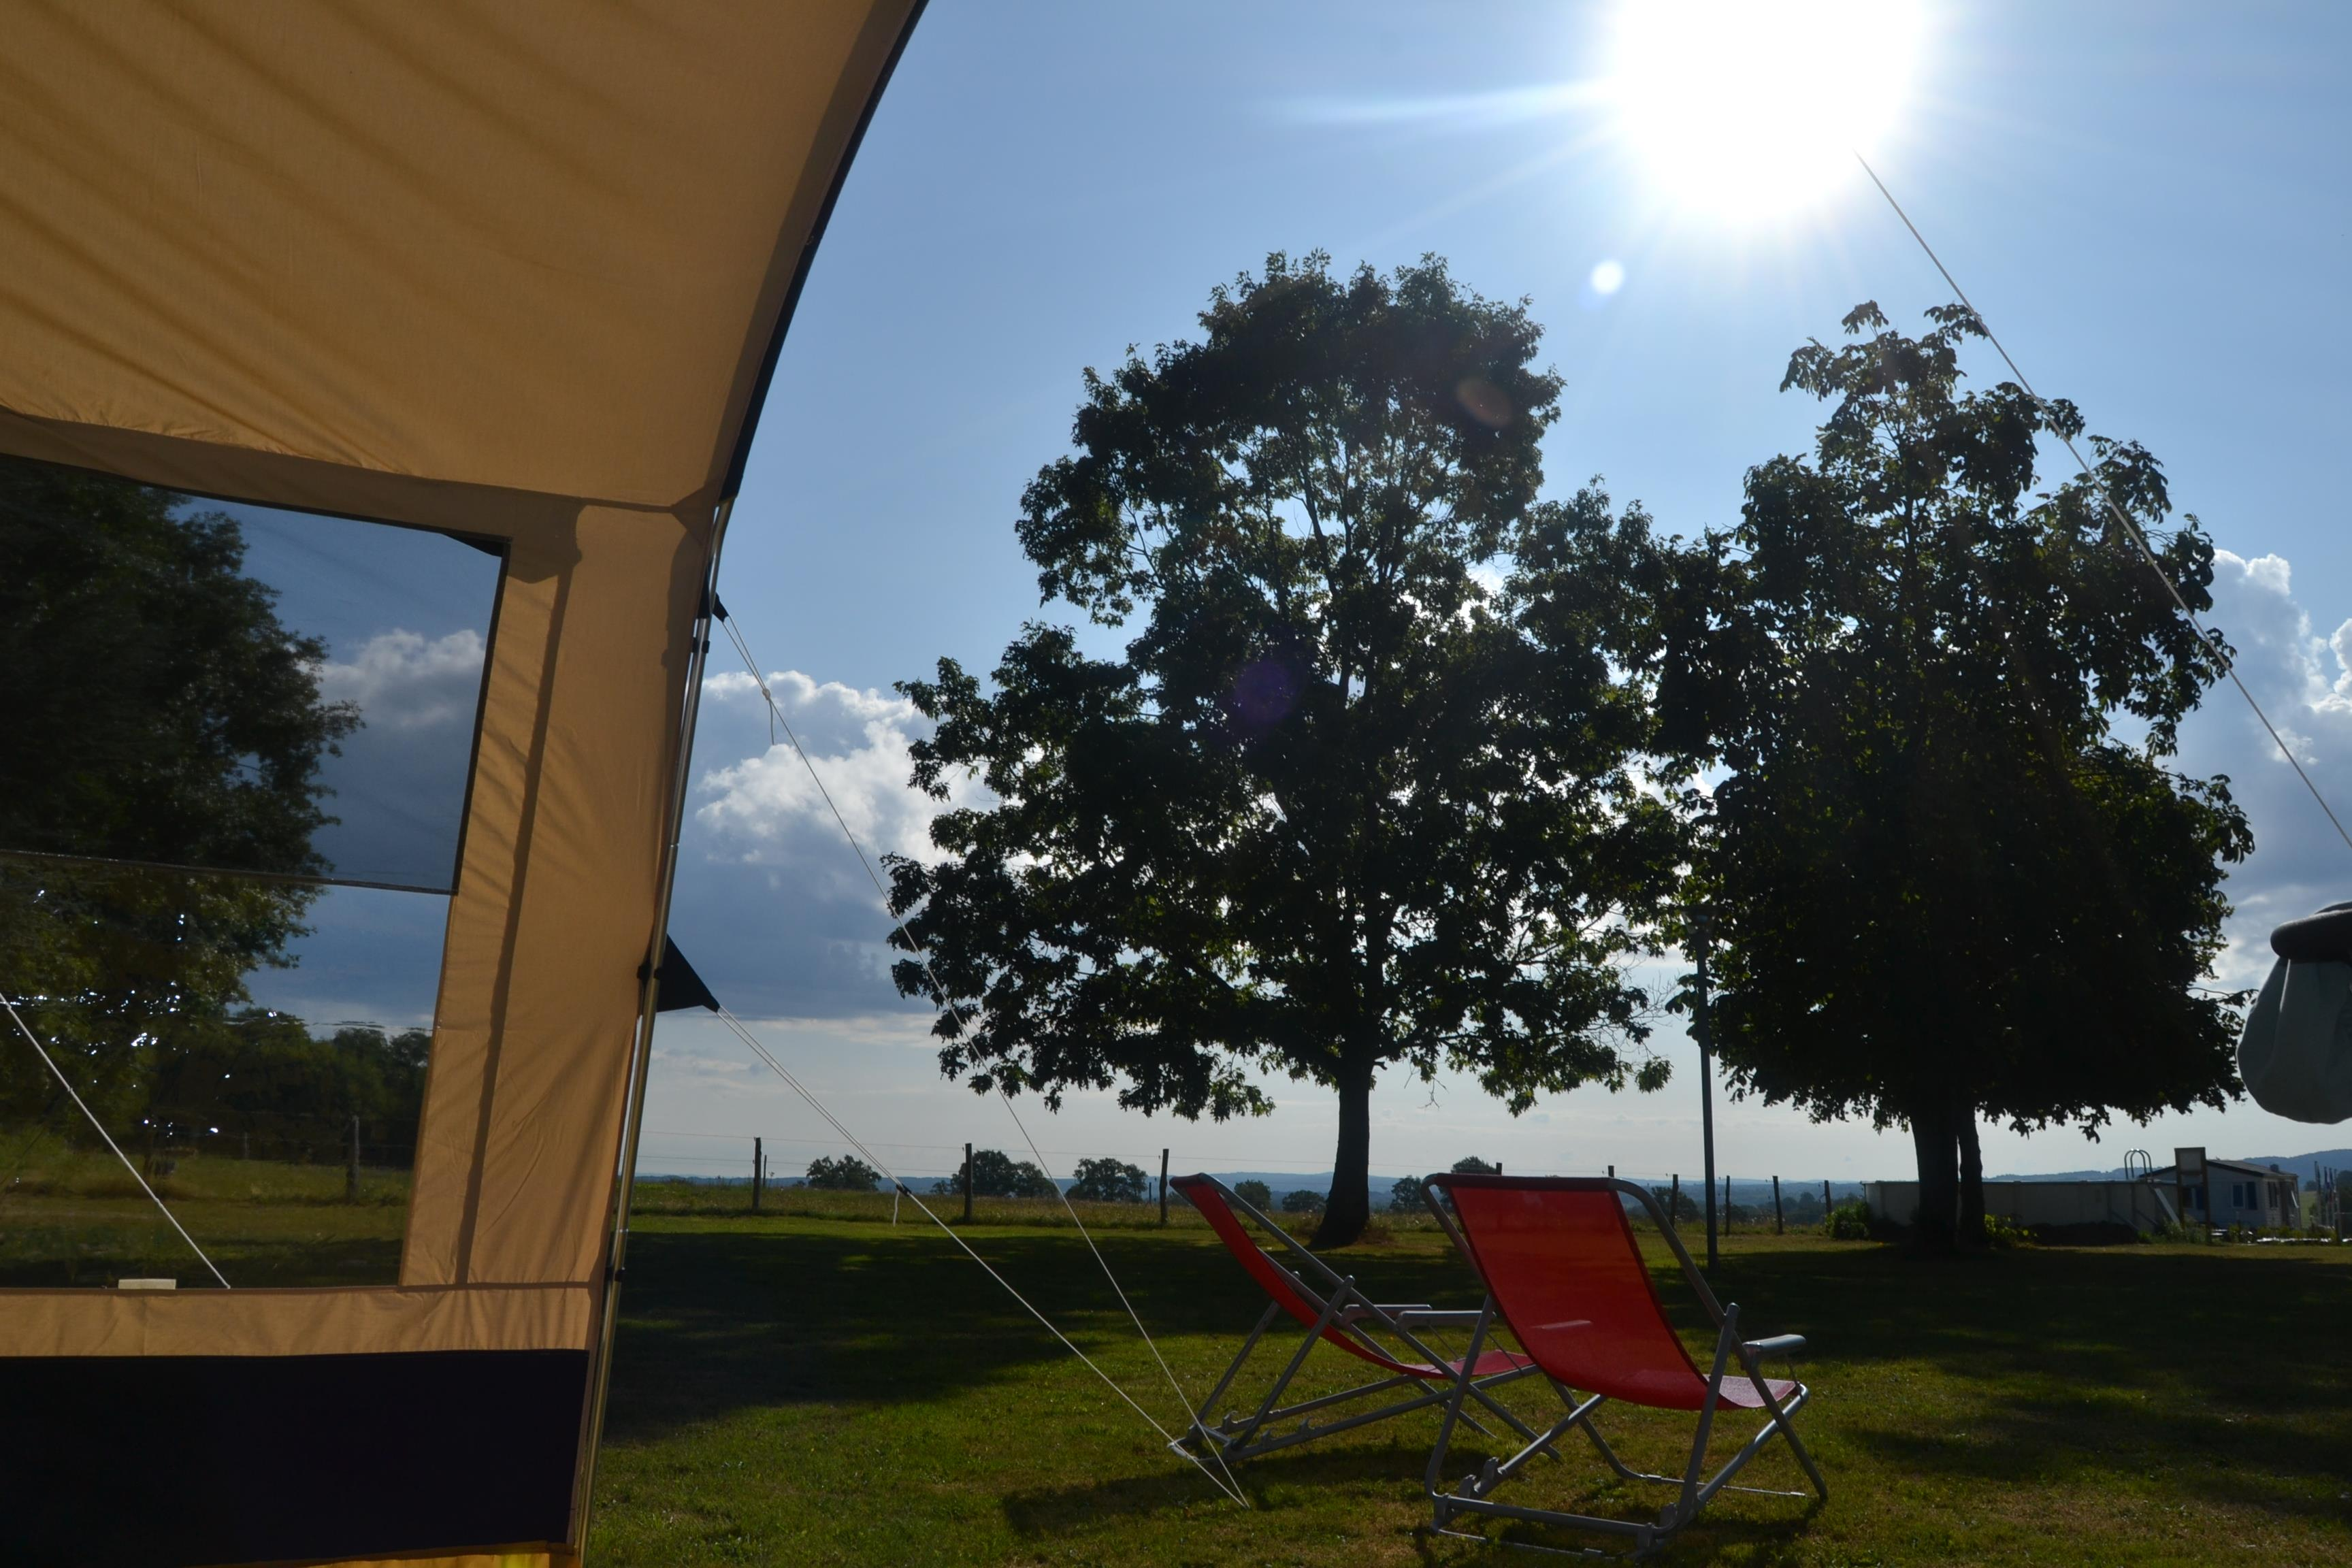 Establishment Camping Dun-le-Palestel - Dun-le-Palestel